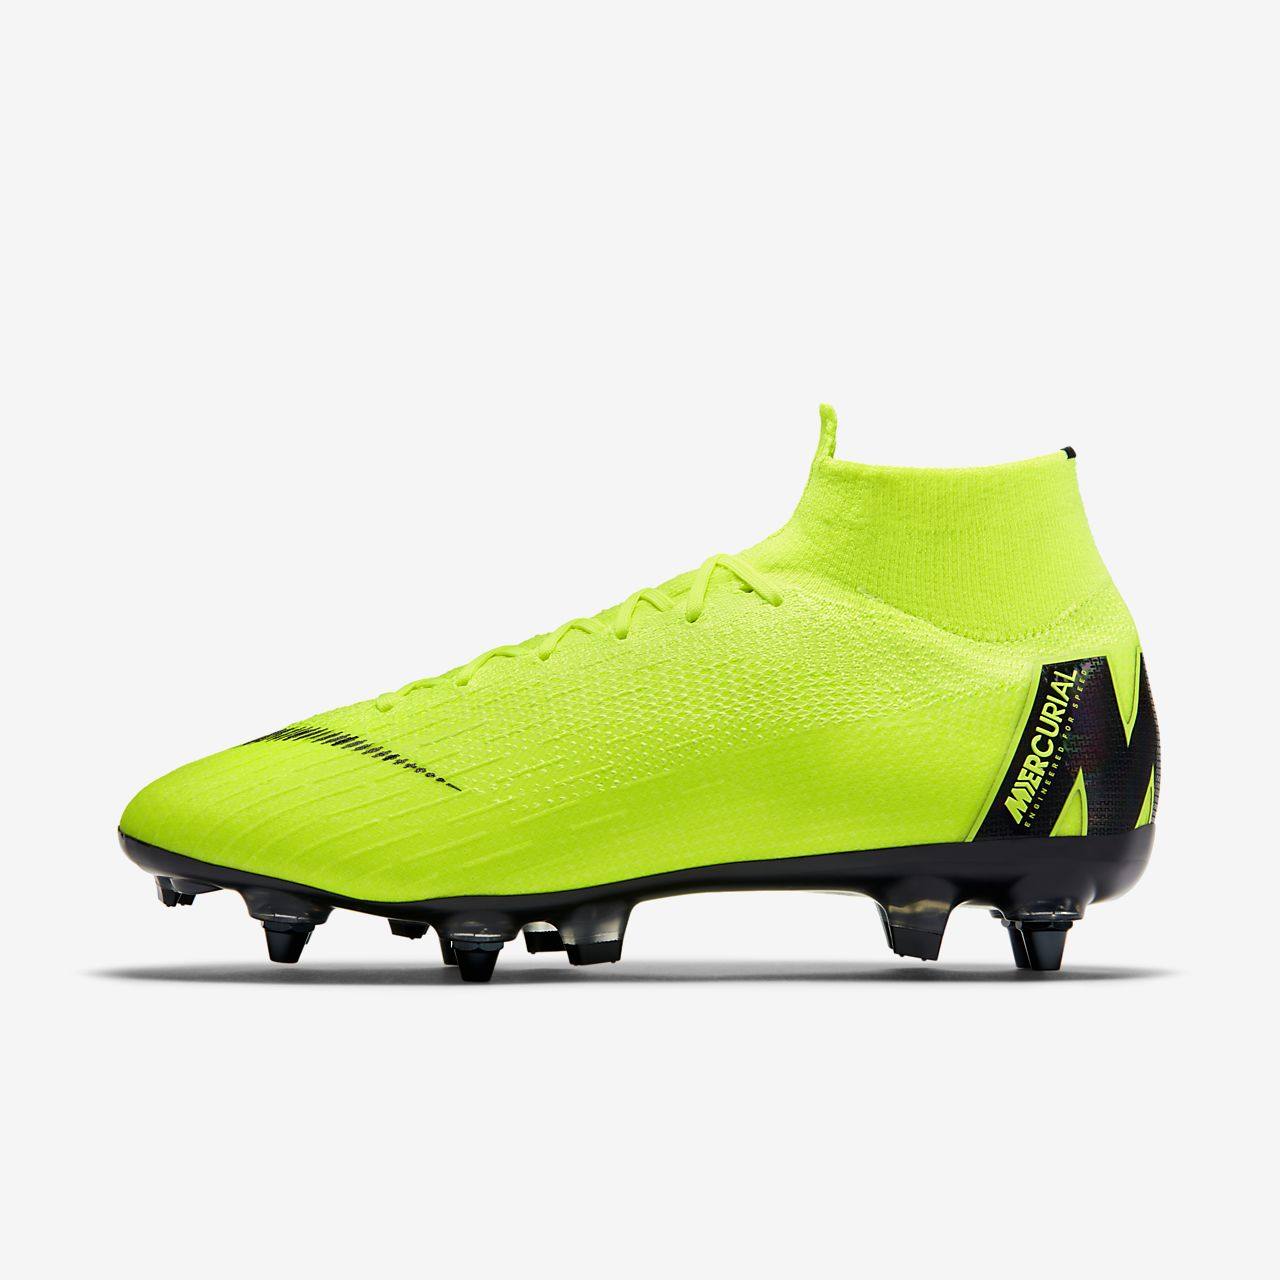 0b98a02c68da Soft-Ground Football Boot. Nike Mercurial Superfly 360 Elite SG-PRO  Anti-Clog